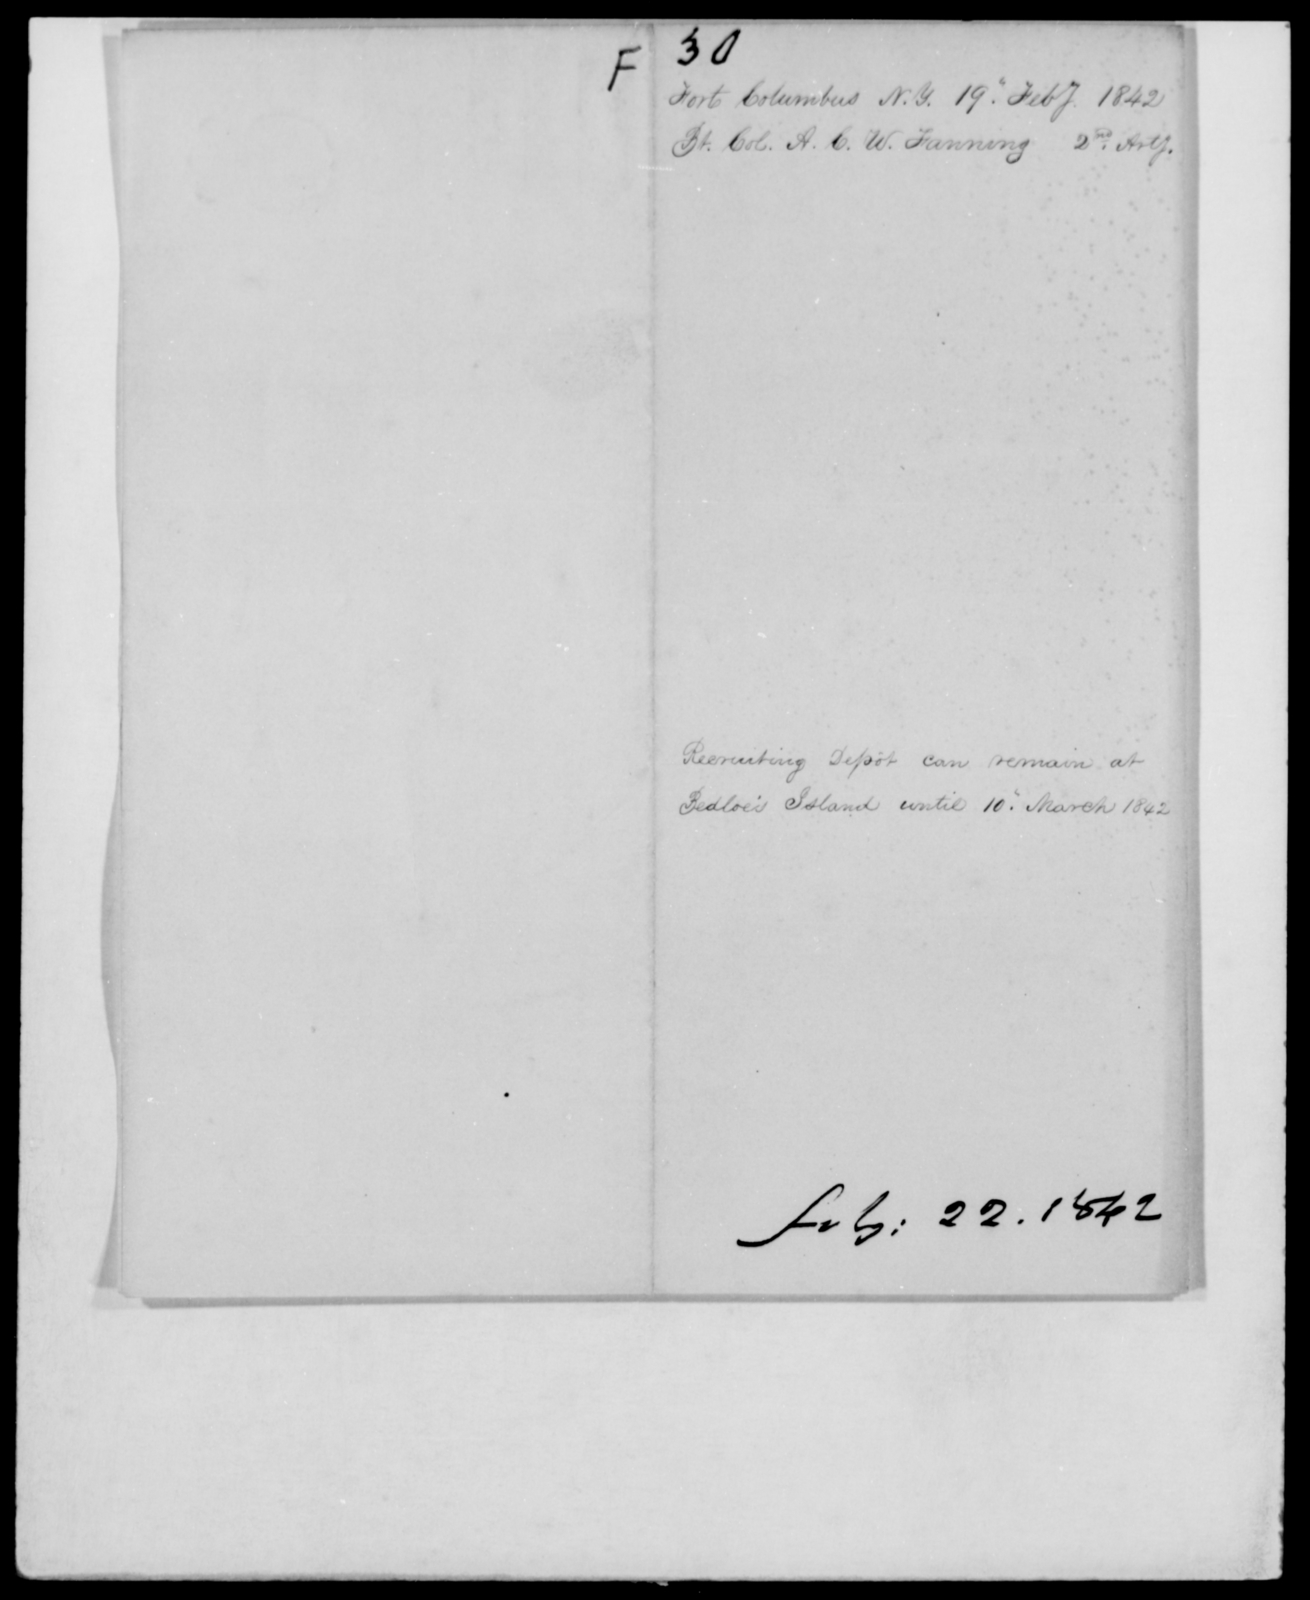 Fanning, A C W - State: New York - Year: 1842 - File Number: F30